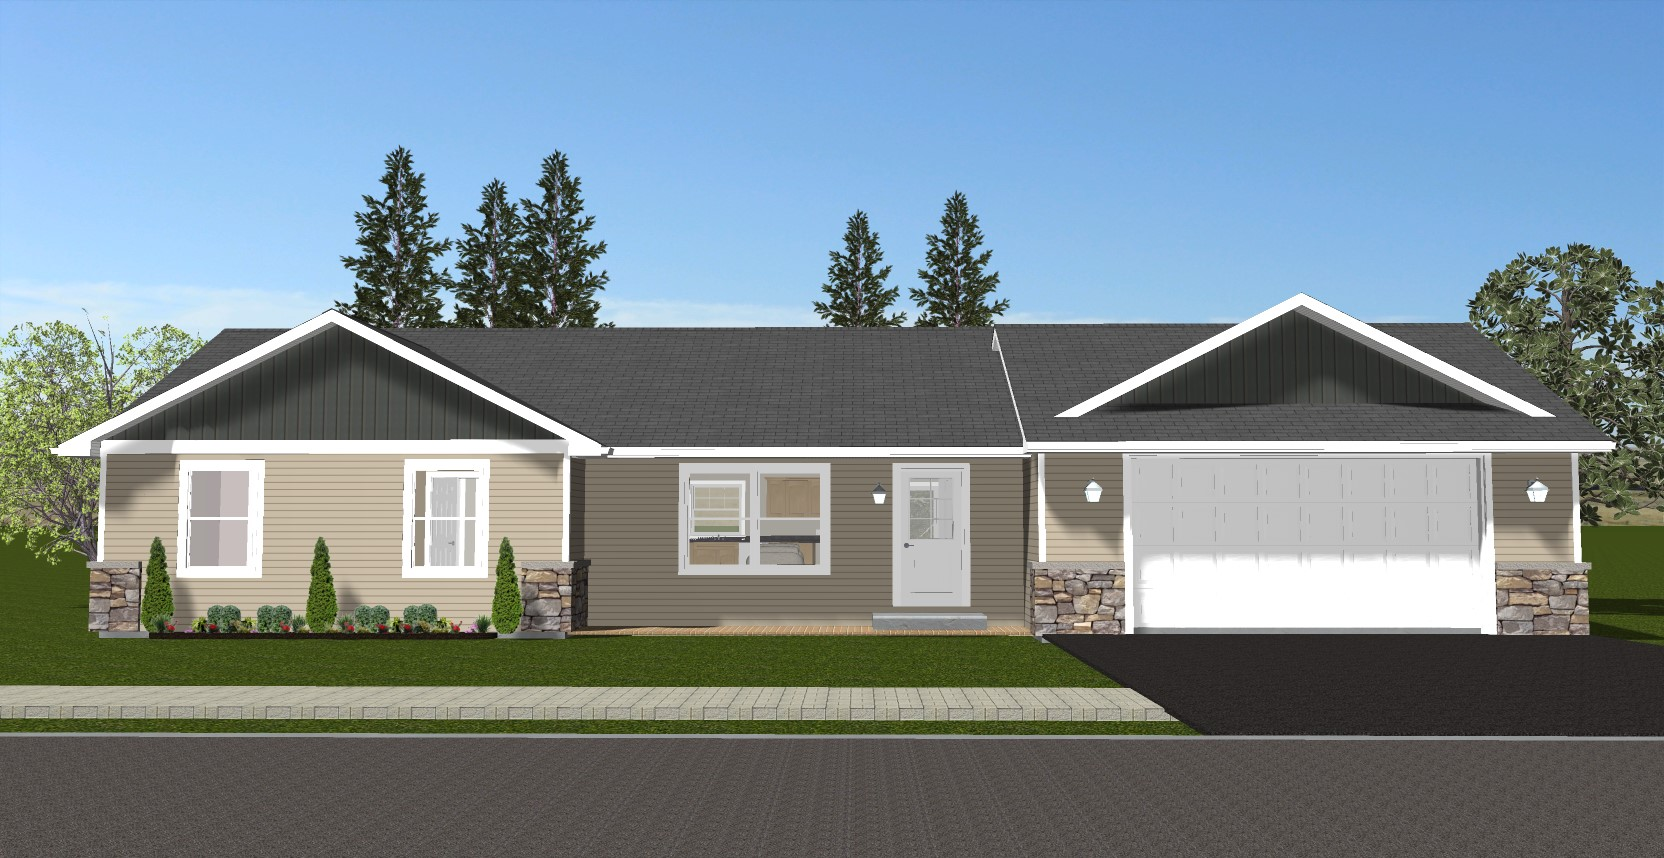 //kibhomes.com/wp-content/uploads/2020/04/FRONT-VIEW.jpg